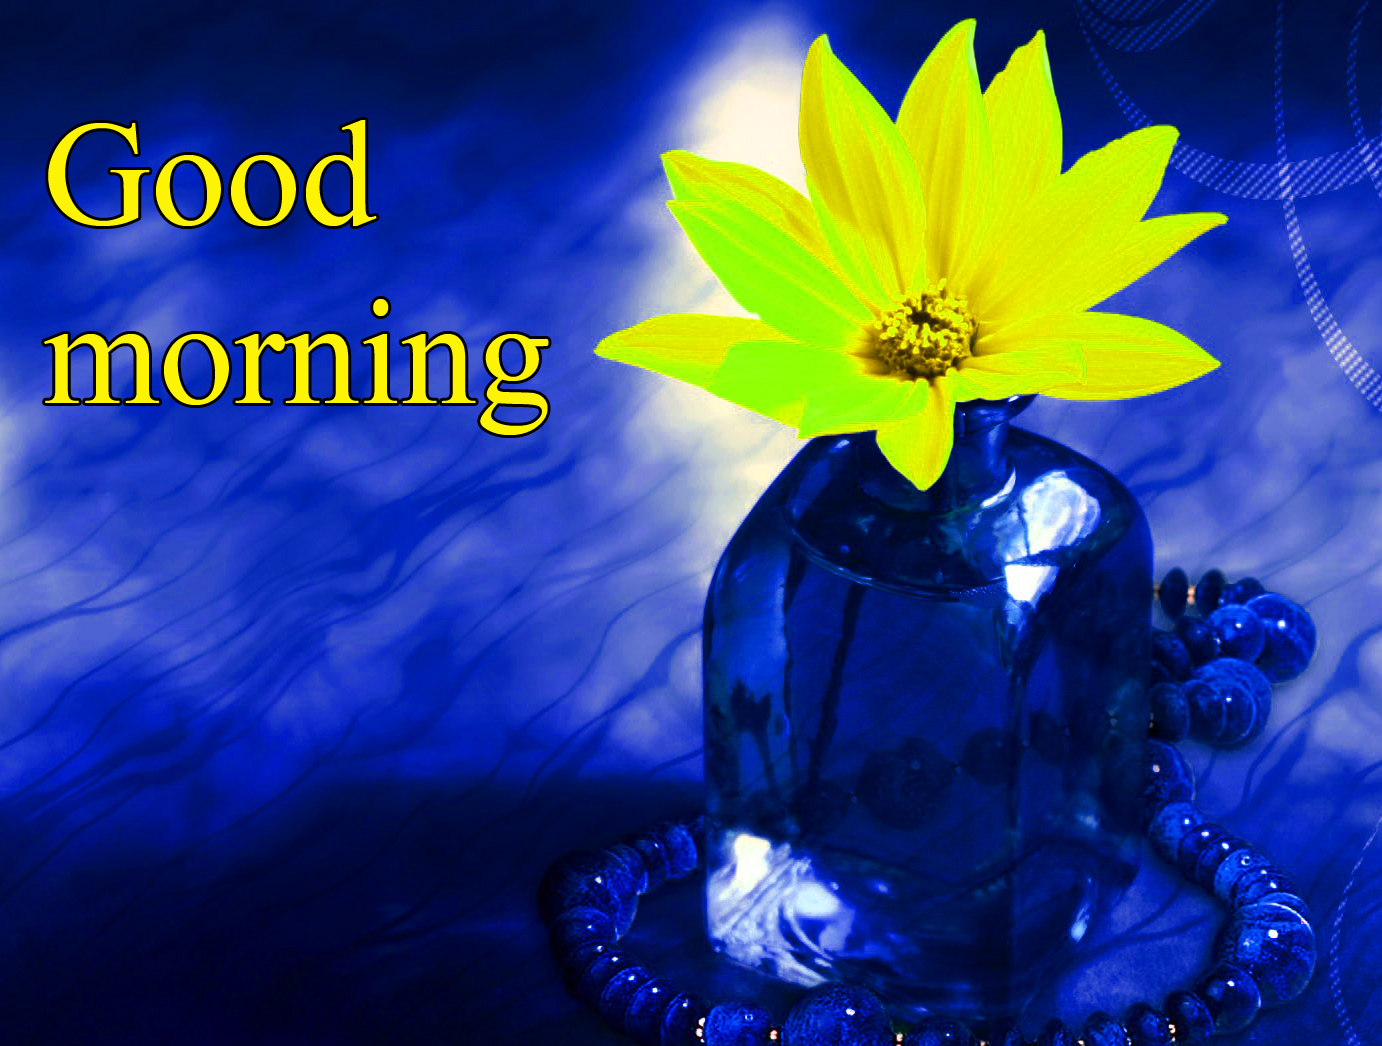 LORD SHIVA GOOD MORNING WISHES IMAGES WALLPAPER WITH FLOWER